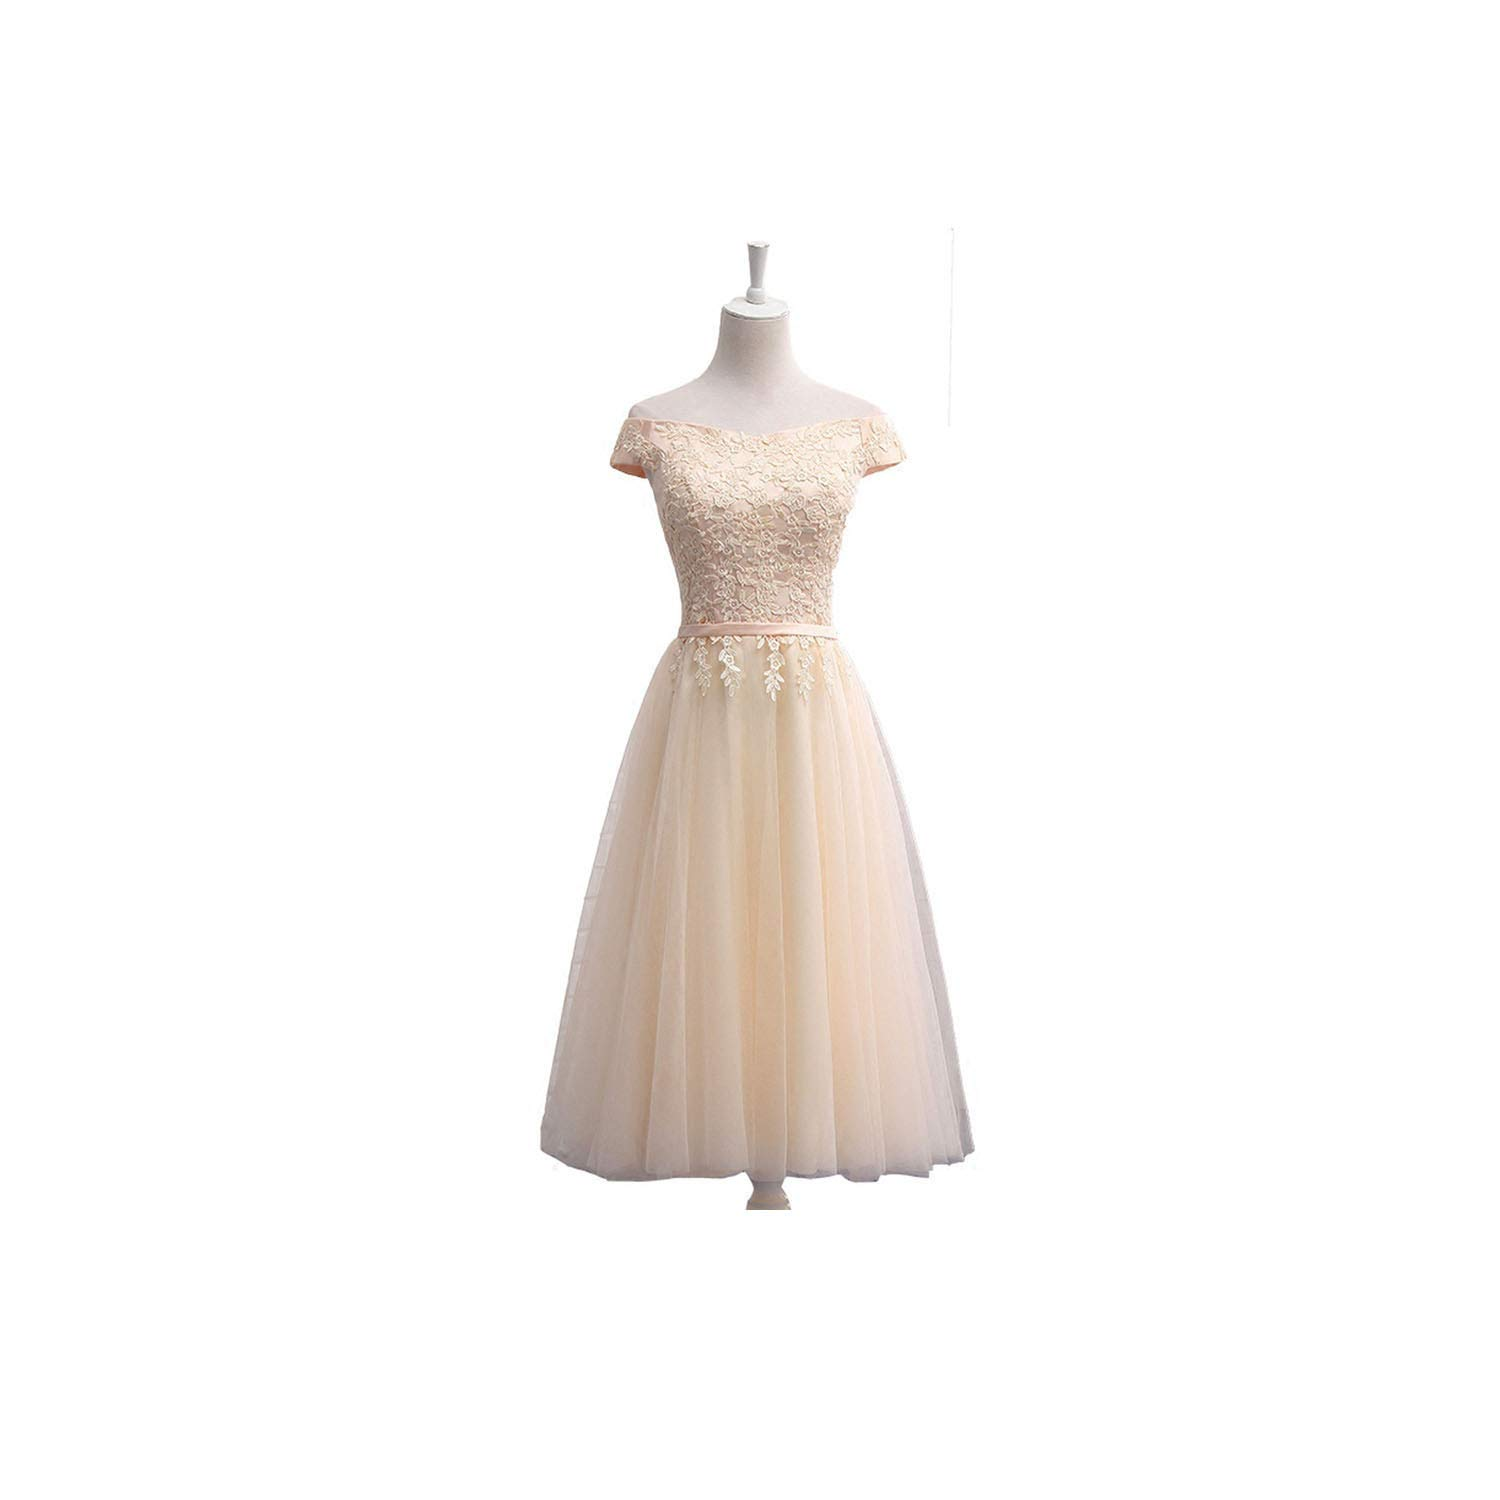 Champagne tea length Bridesmaid Dresses FloorLength Boat Neck Cap Sleeve Applique Embroidery Dress